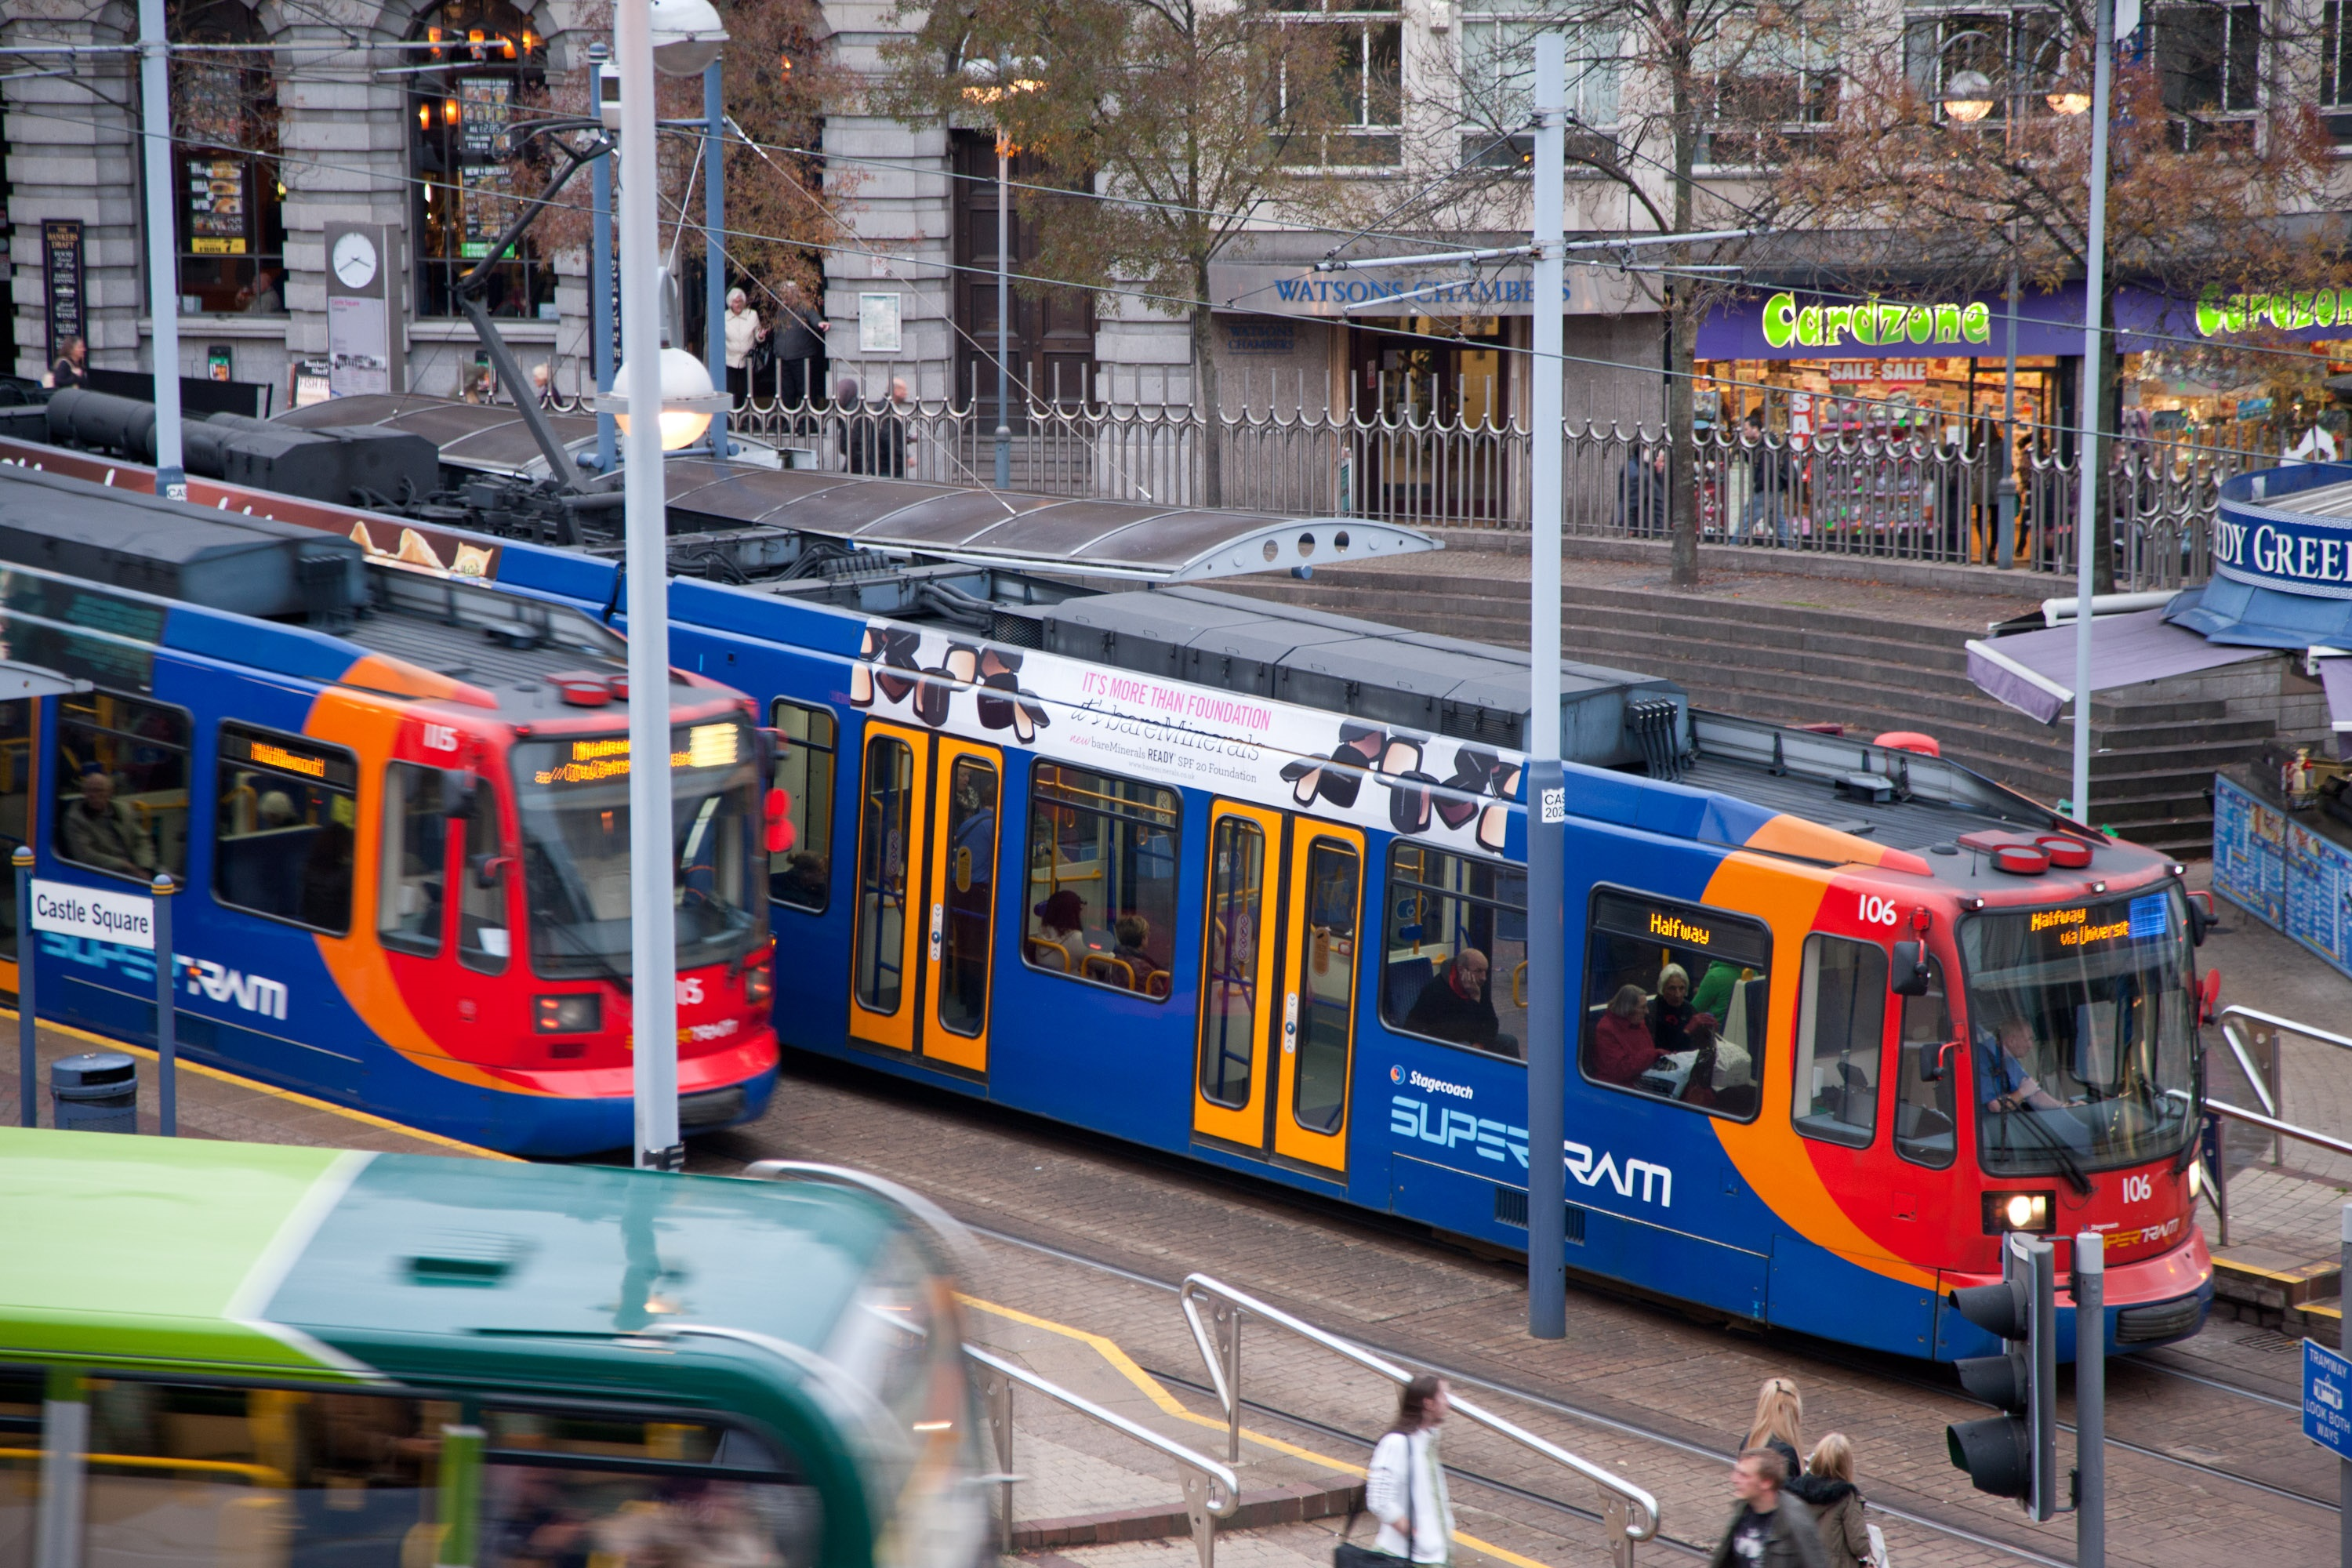 Engineering works planned on Supertram network in late April